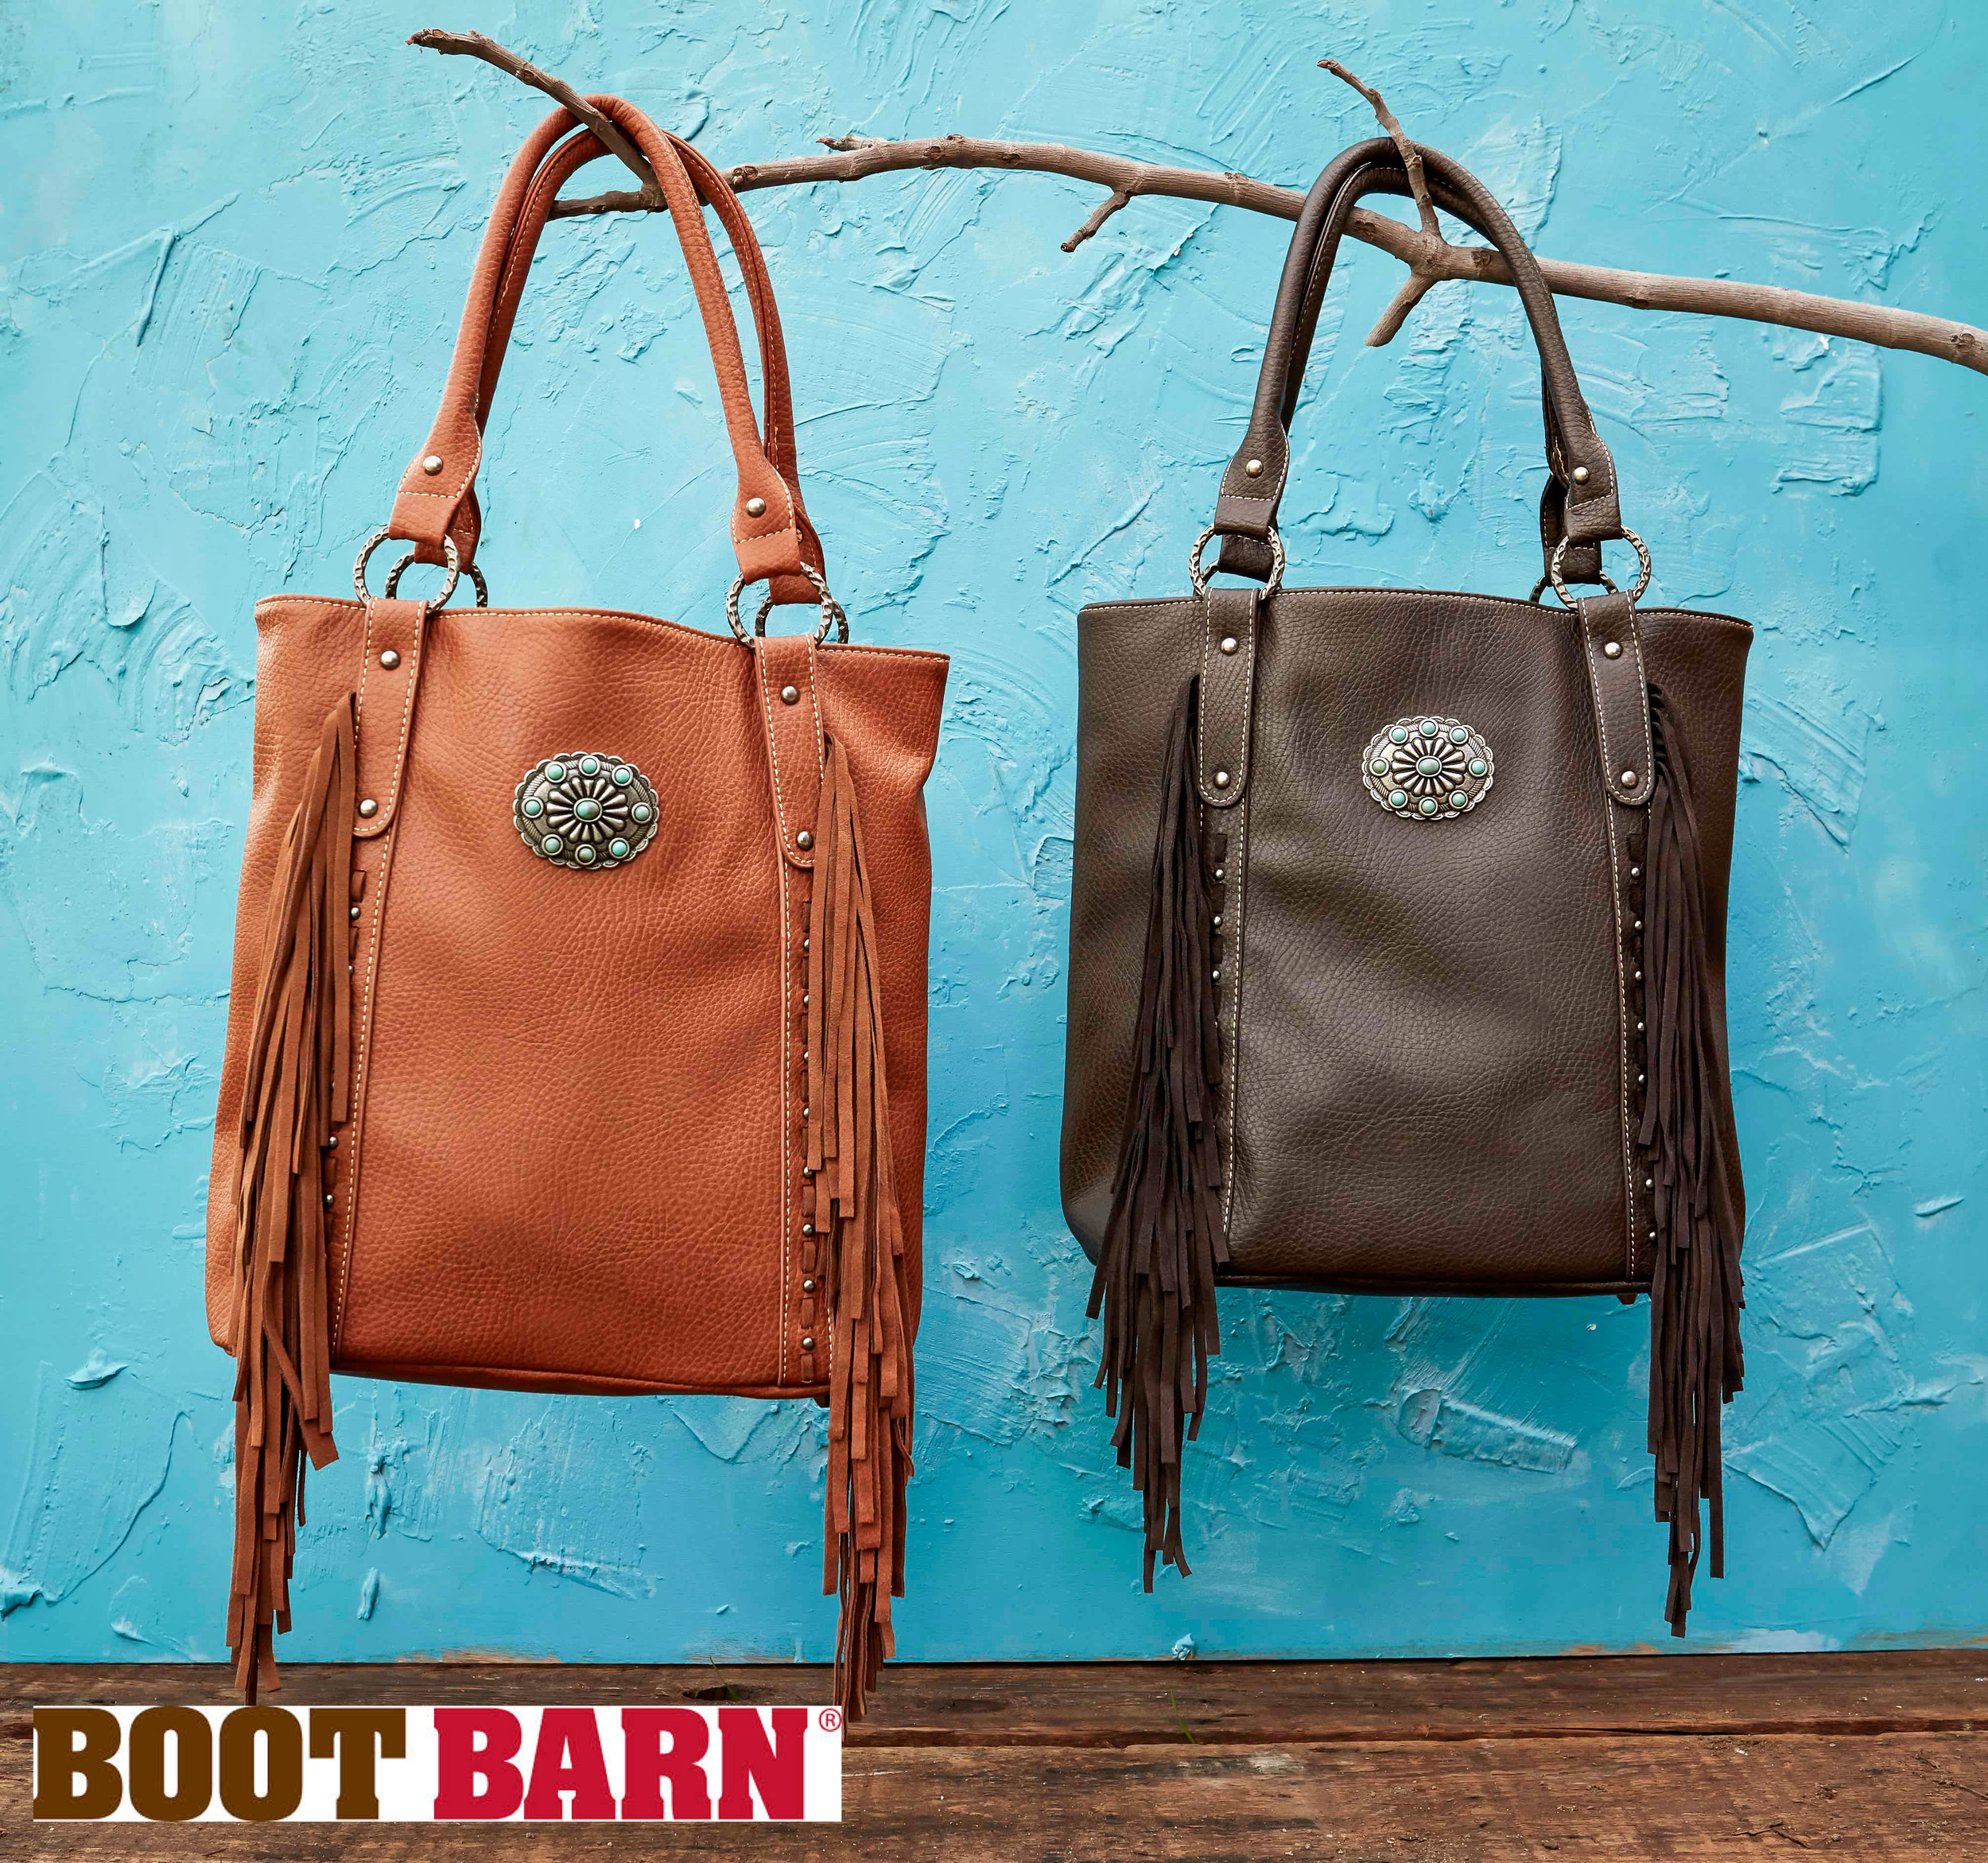 Products with bootbarn logo-.jpg